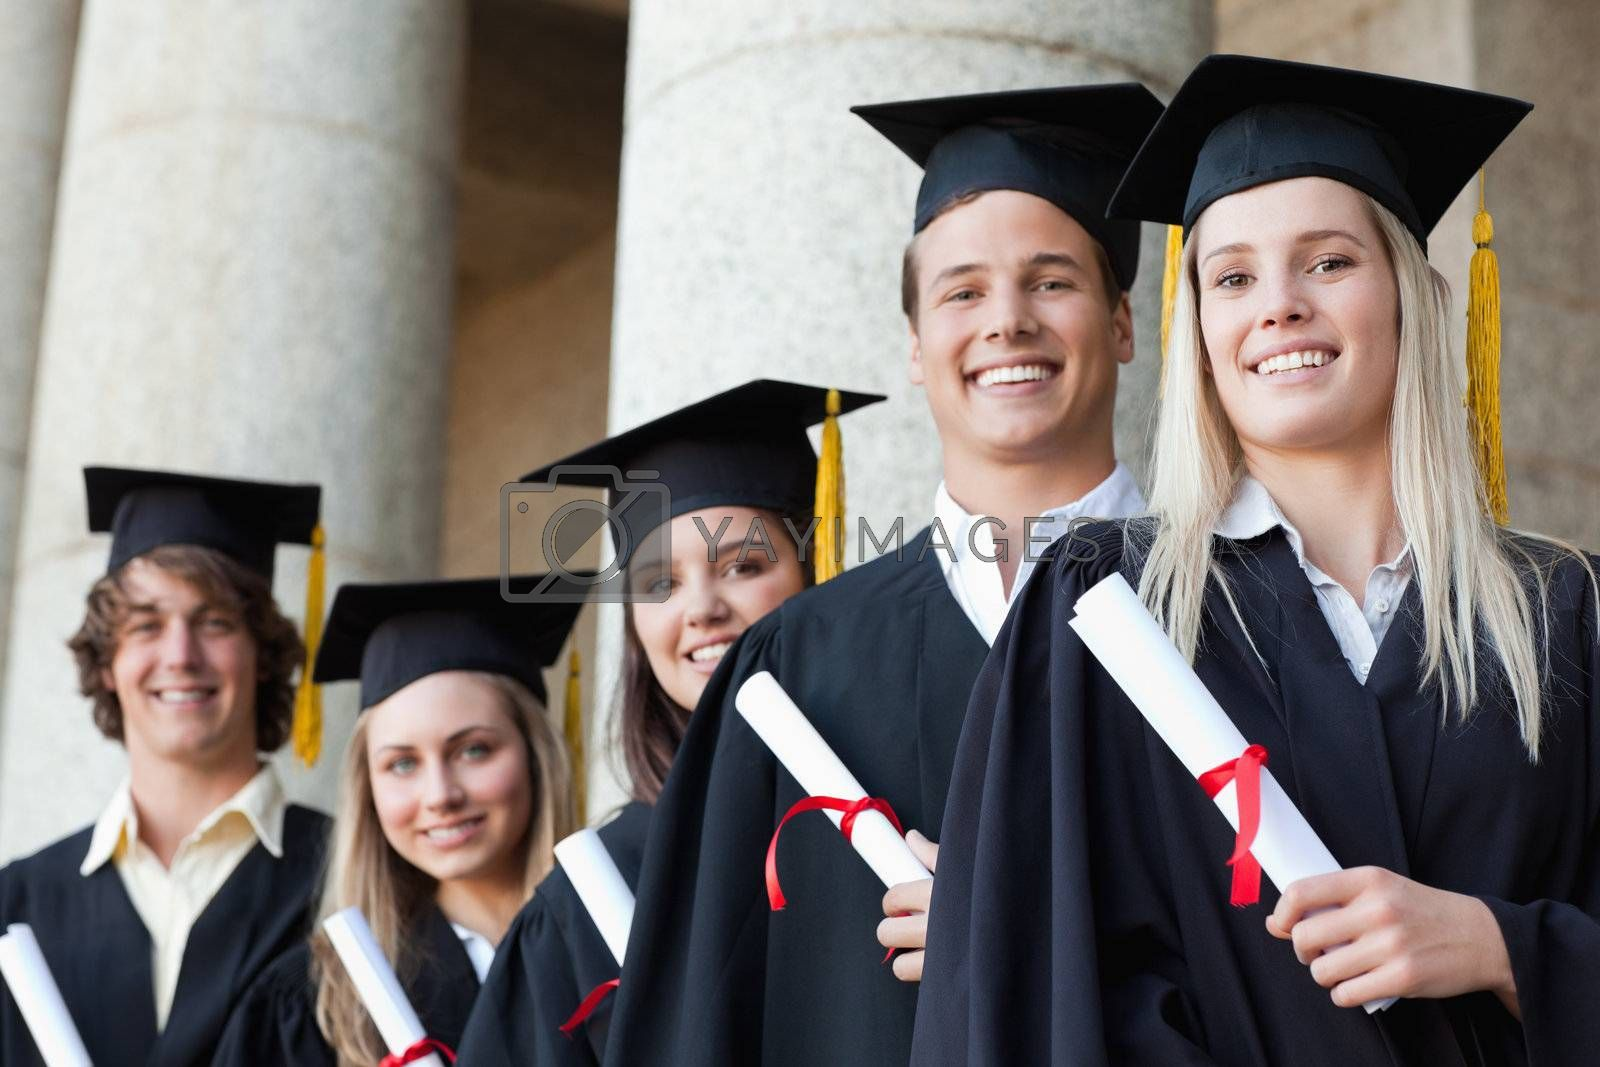 Close-up of five smiling graduates posing in front of the university